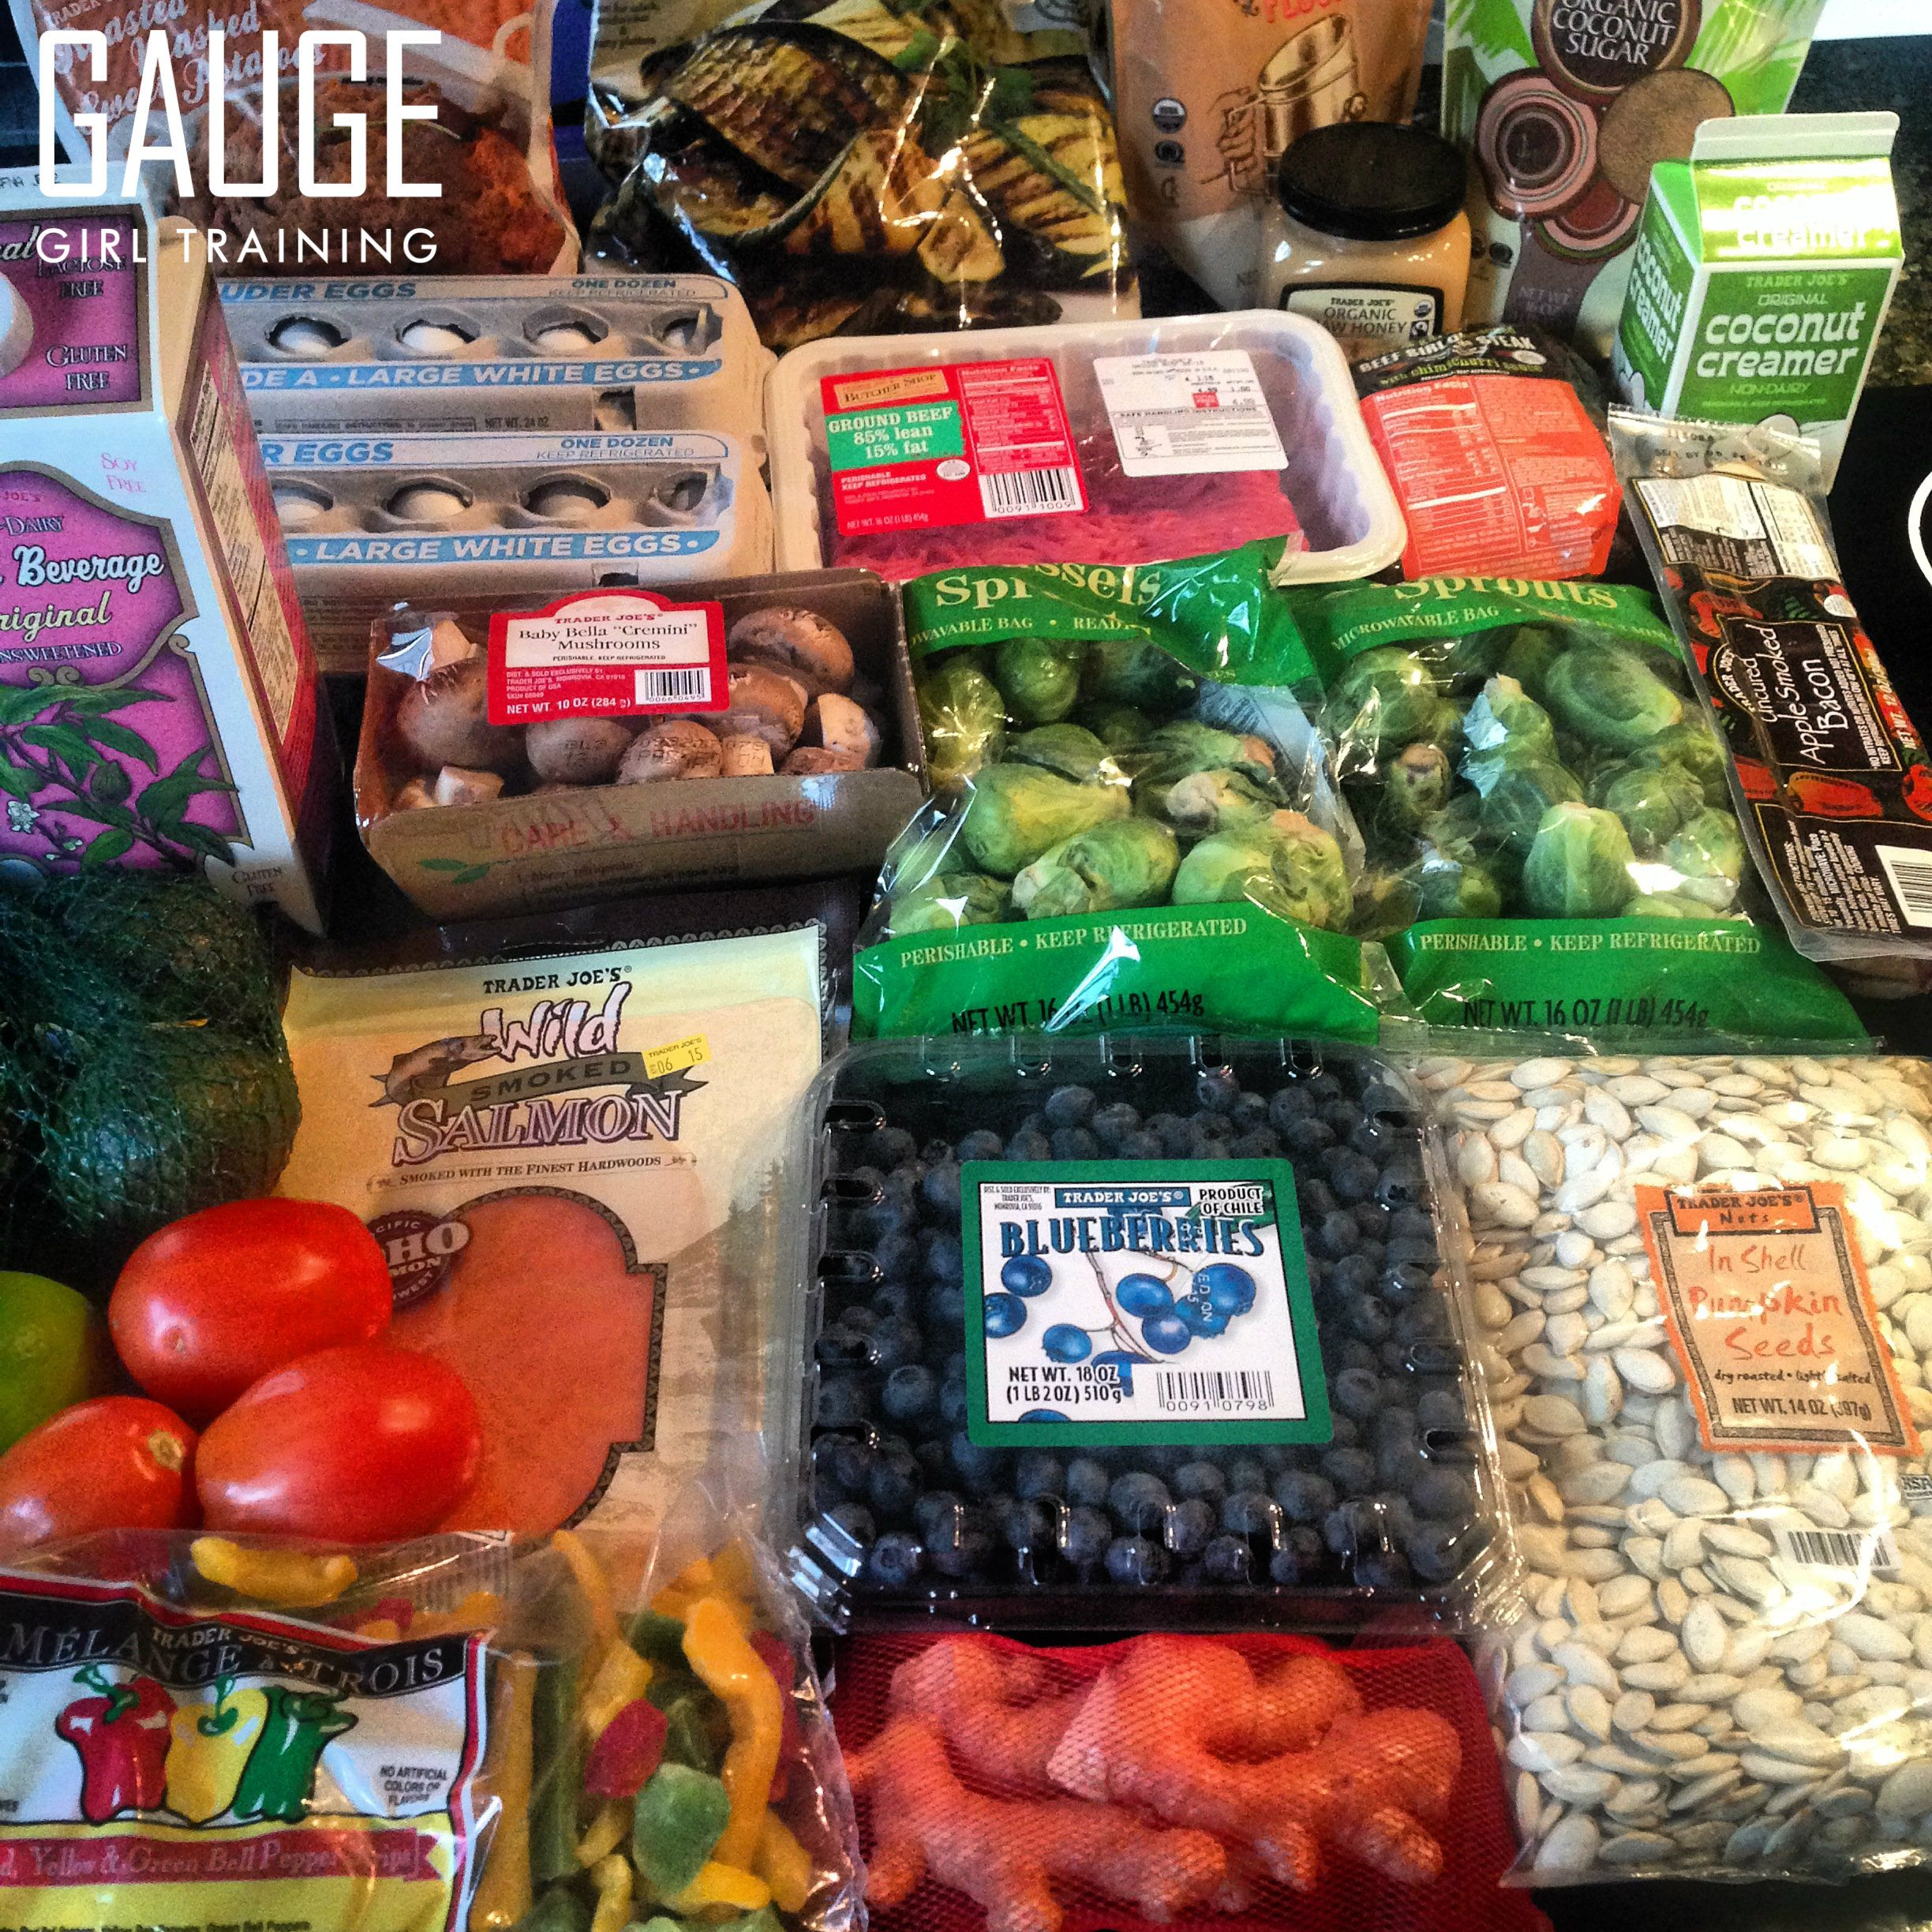 Check out this grocery haul from trader joes for my paleo meal plan do it yourself programs gauge girl training solutioingenieria Choice Image